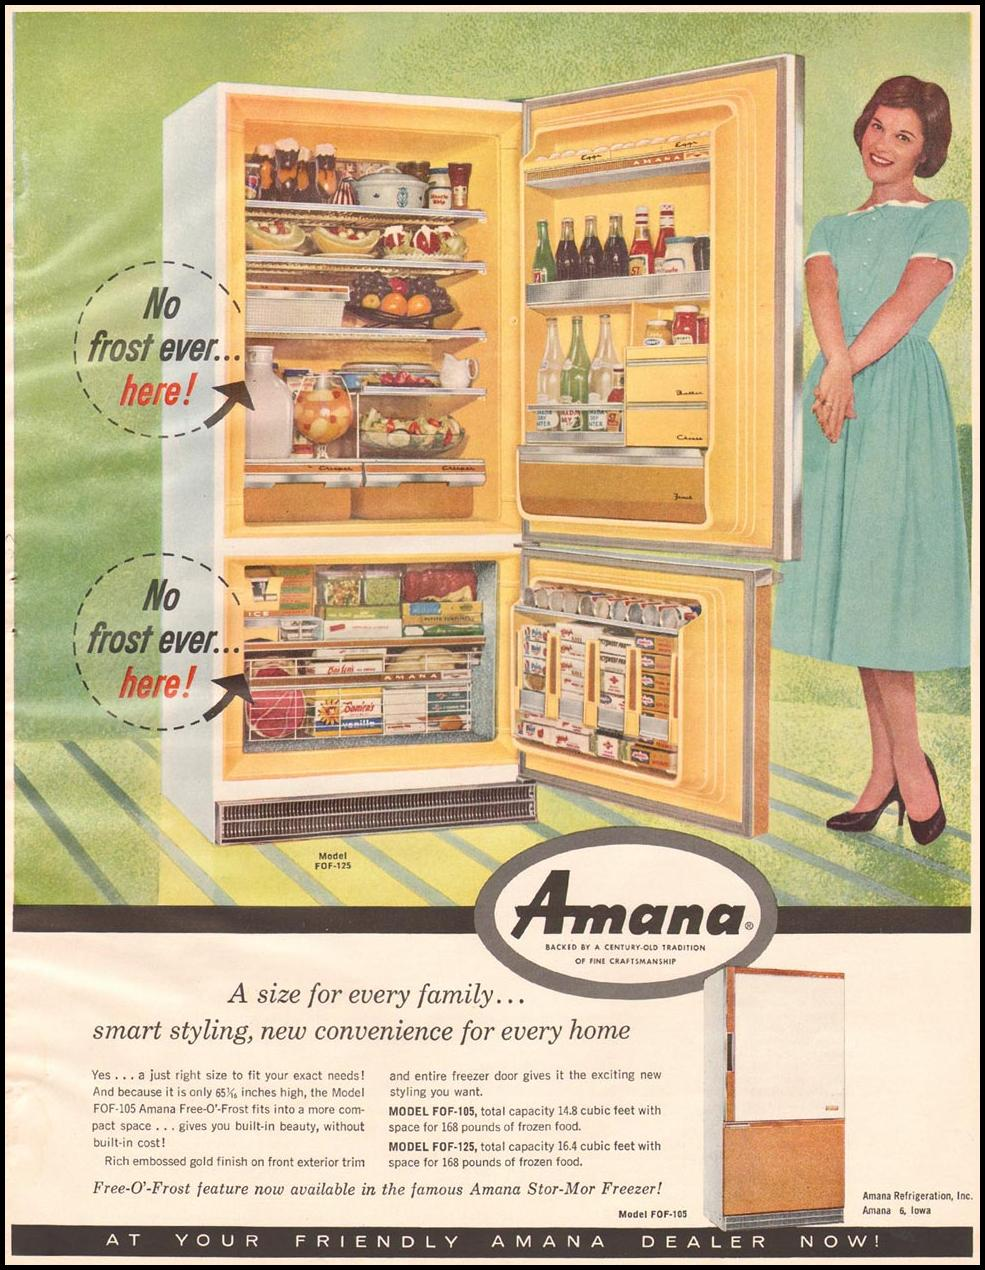 AMANA REFRIGERATORS BETTER HOMES AND GARDENS 03/01/1960 p. 137